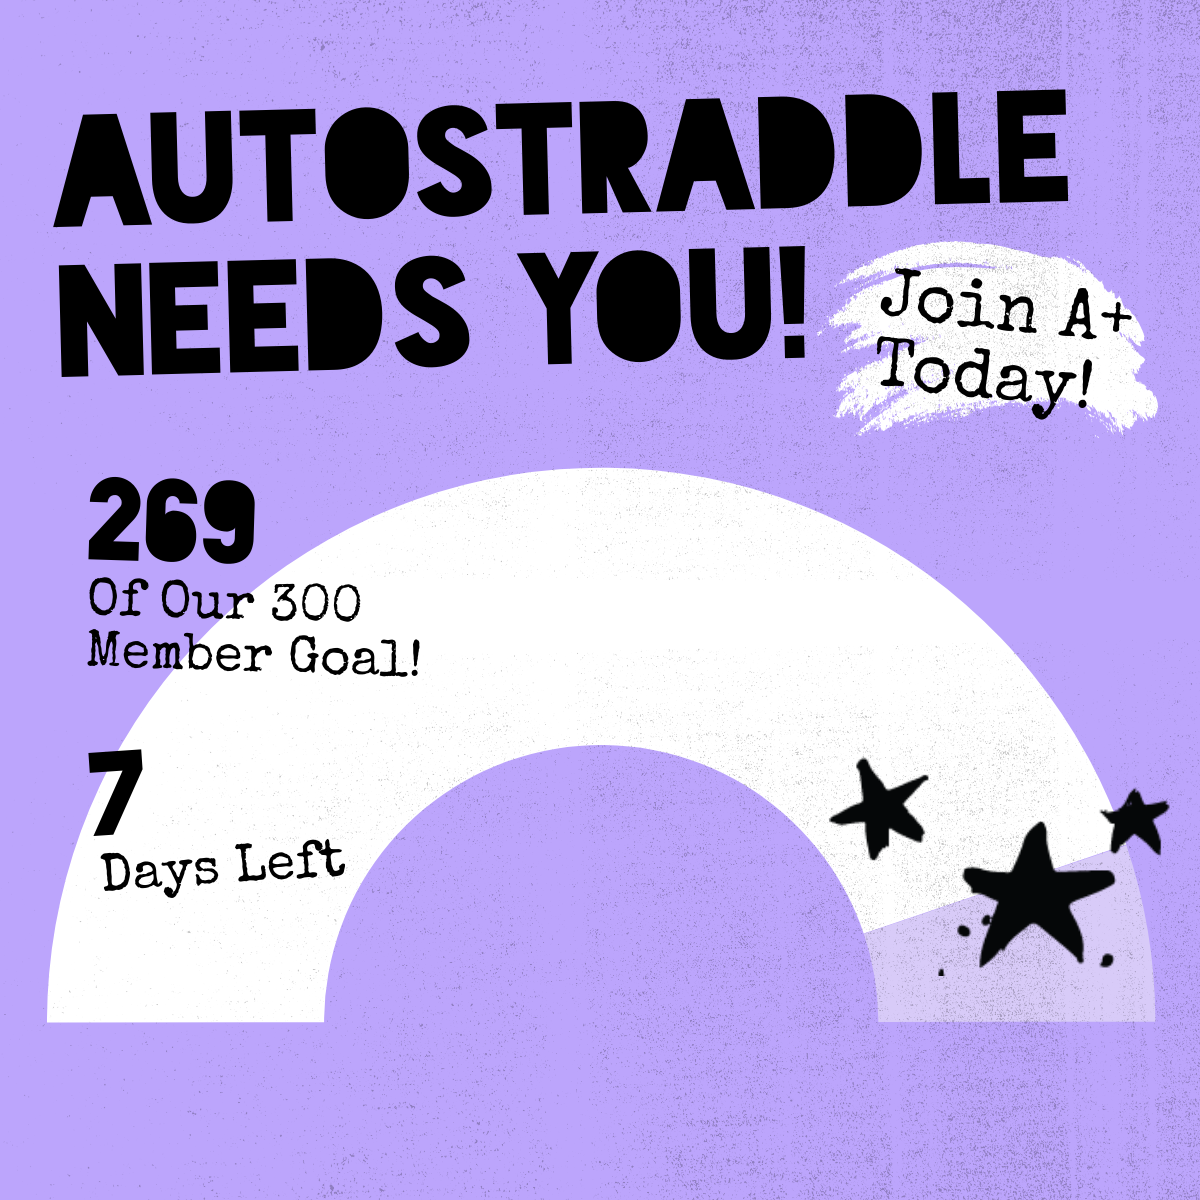 Autostraddle Needs You! 269 of our 300 member goal! 7 days left. Join A+ Today!